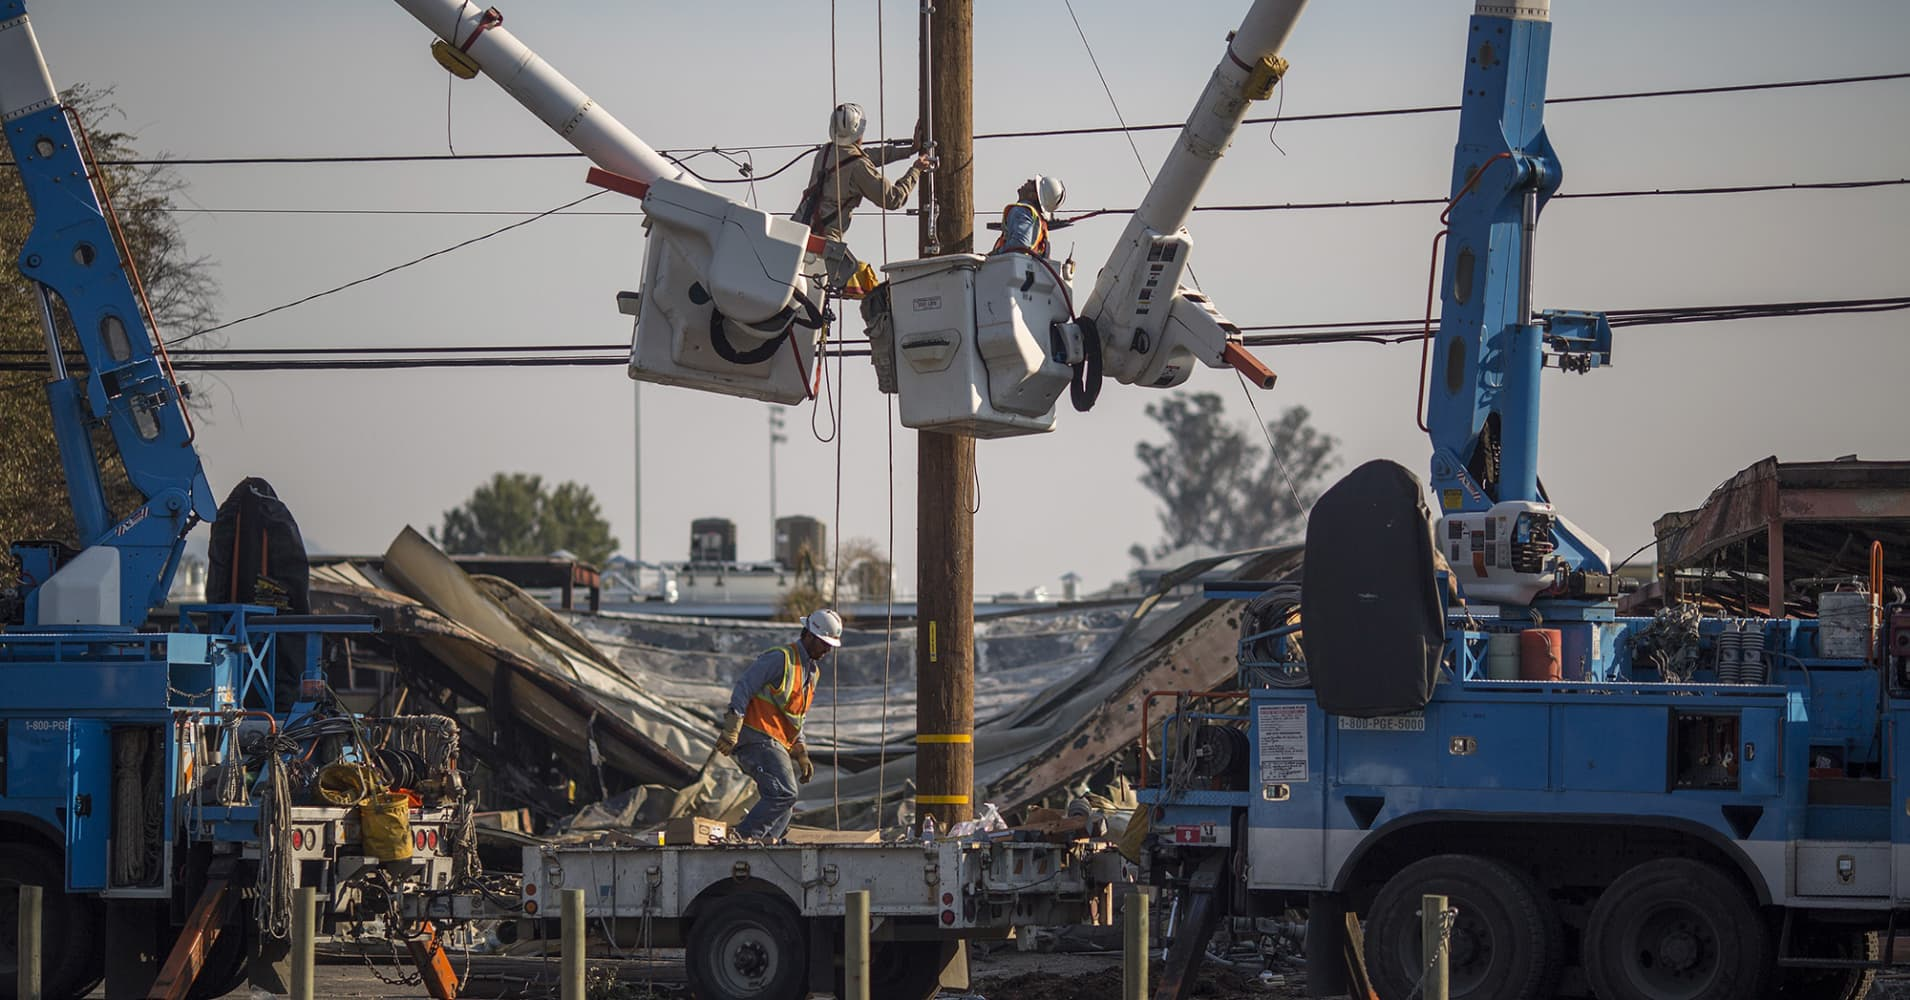 Cal Fire clears PG&E for deadly Tubbs Fire, but utility still faces uncertainty over other blazes